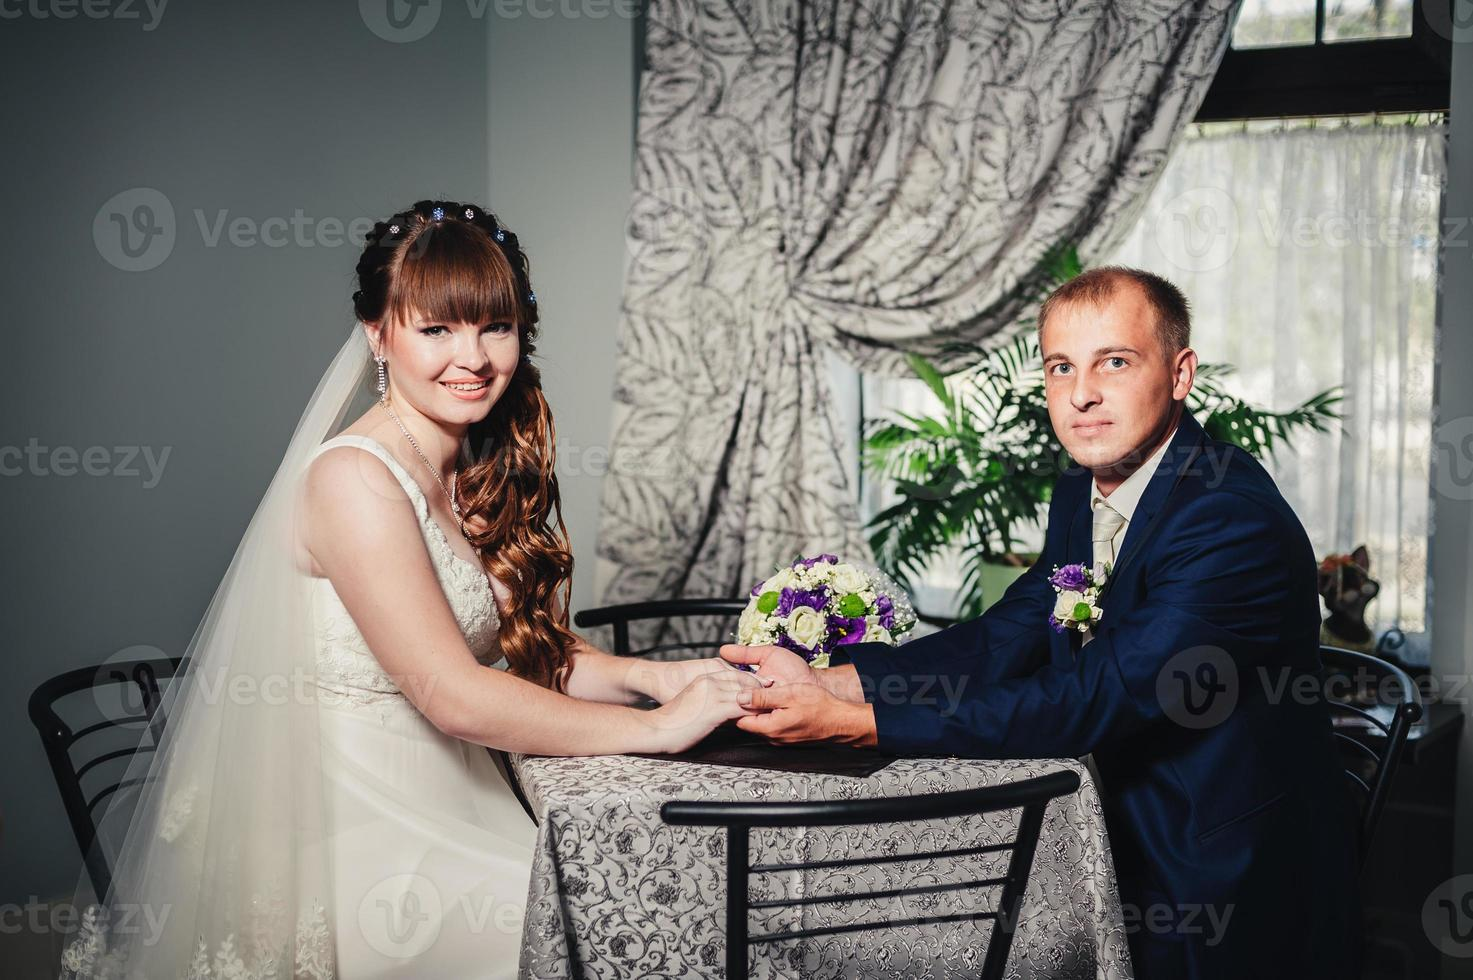 Charming bride and groom on their wedding celebration in a photo